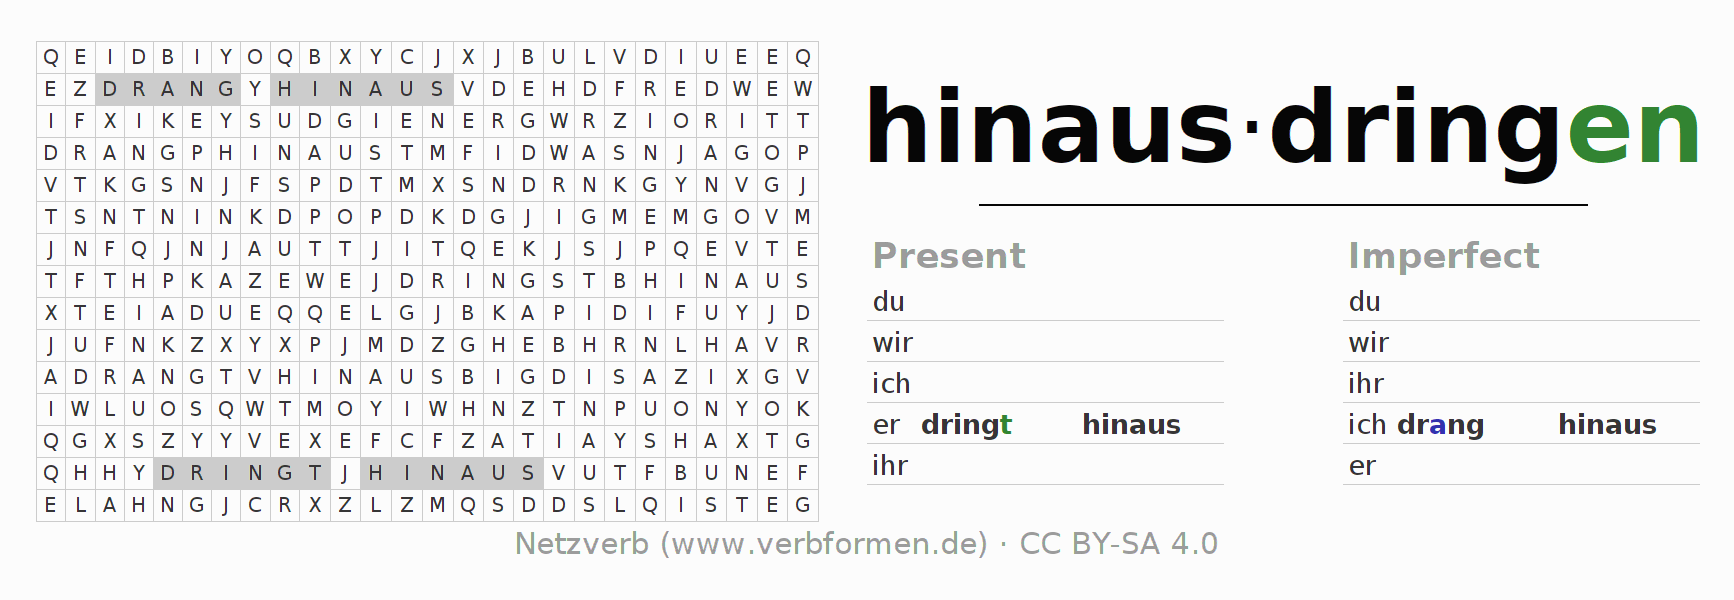 Word search puzzle for the conjugation of the verb hinausdringen